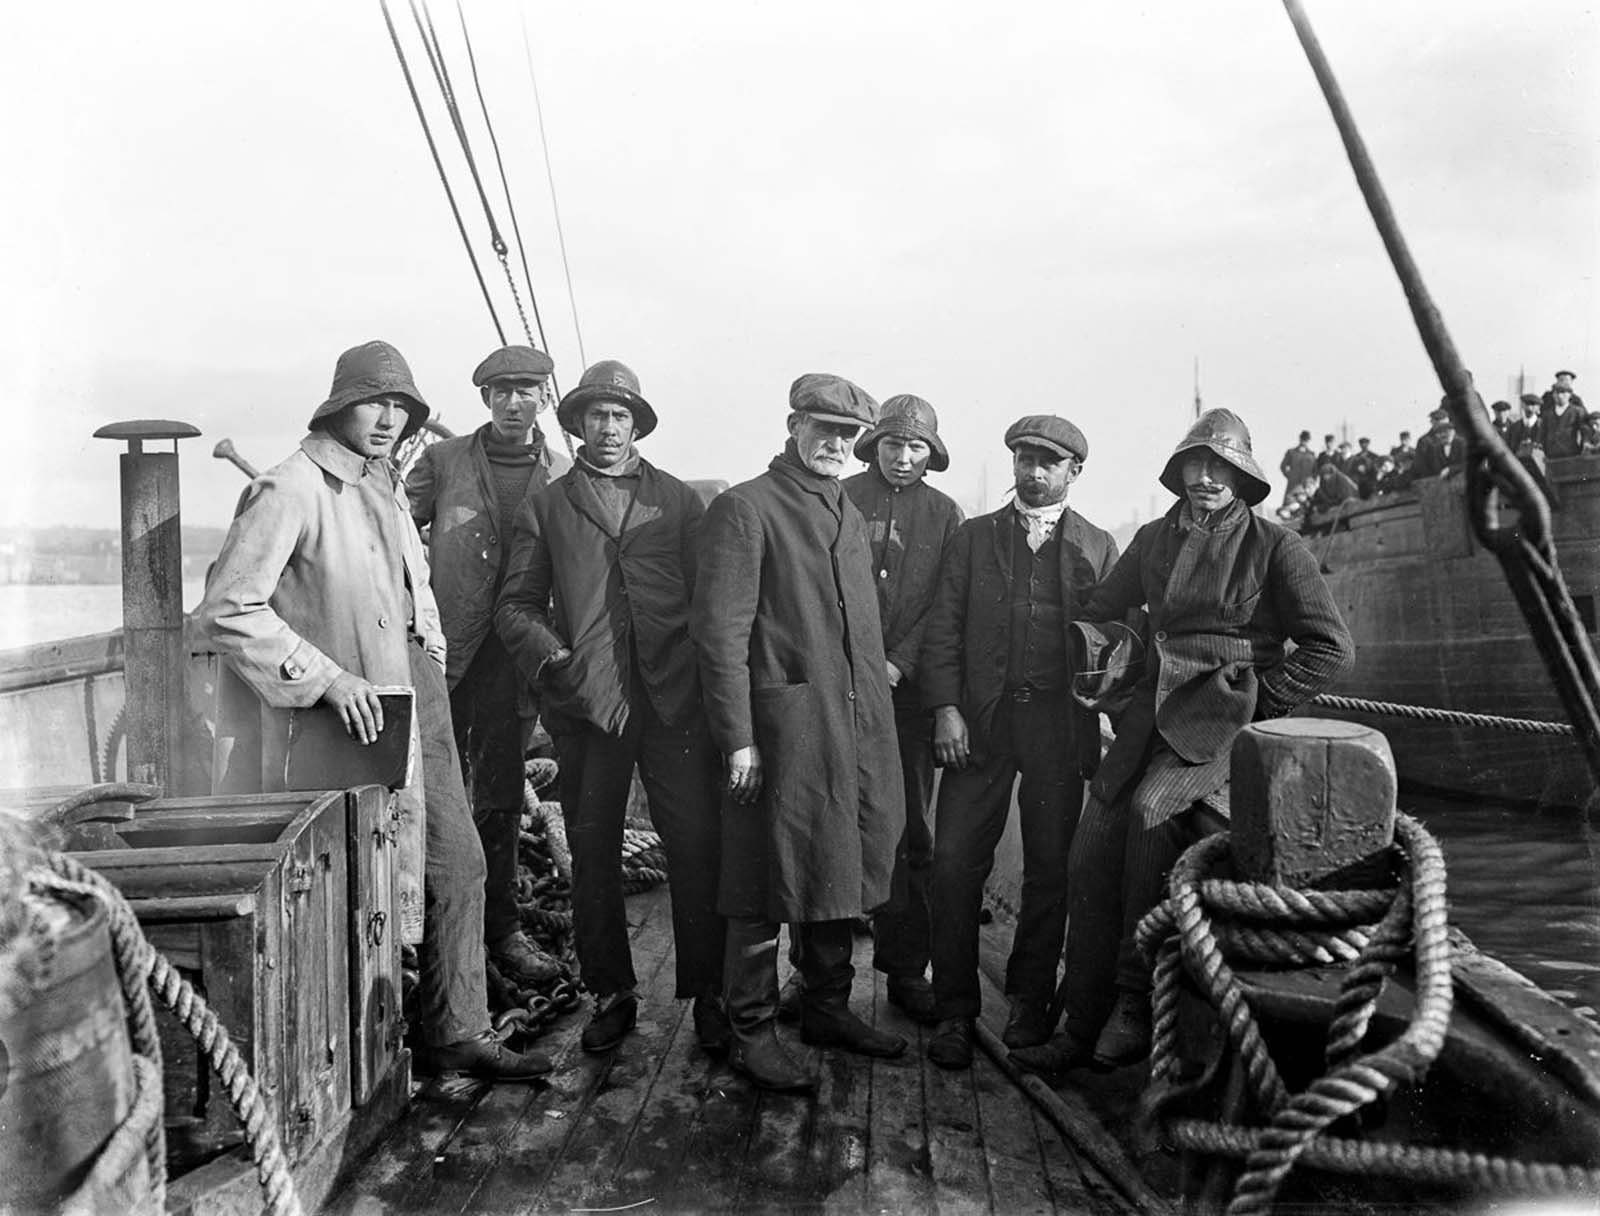 Crew members of the Norwegian vessel The Mexican, which ran aground on the Keragh Islands. The Fethard Lifeboat Helen Blake attempted to rescue them during a storm, but was destroyed with the loss of 9 of the 14 lifeboat men. 1914.